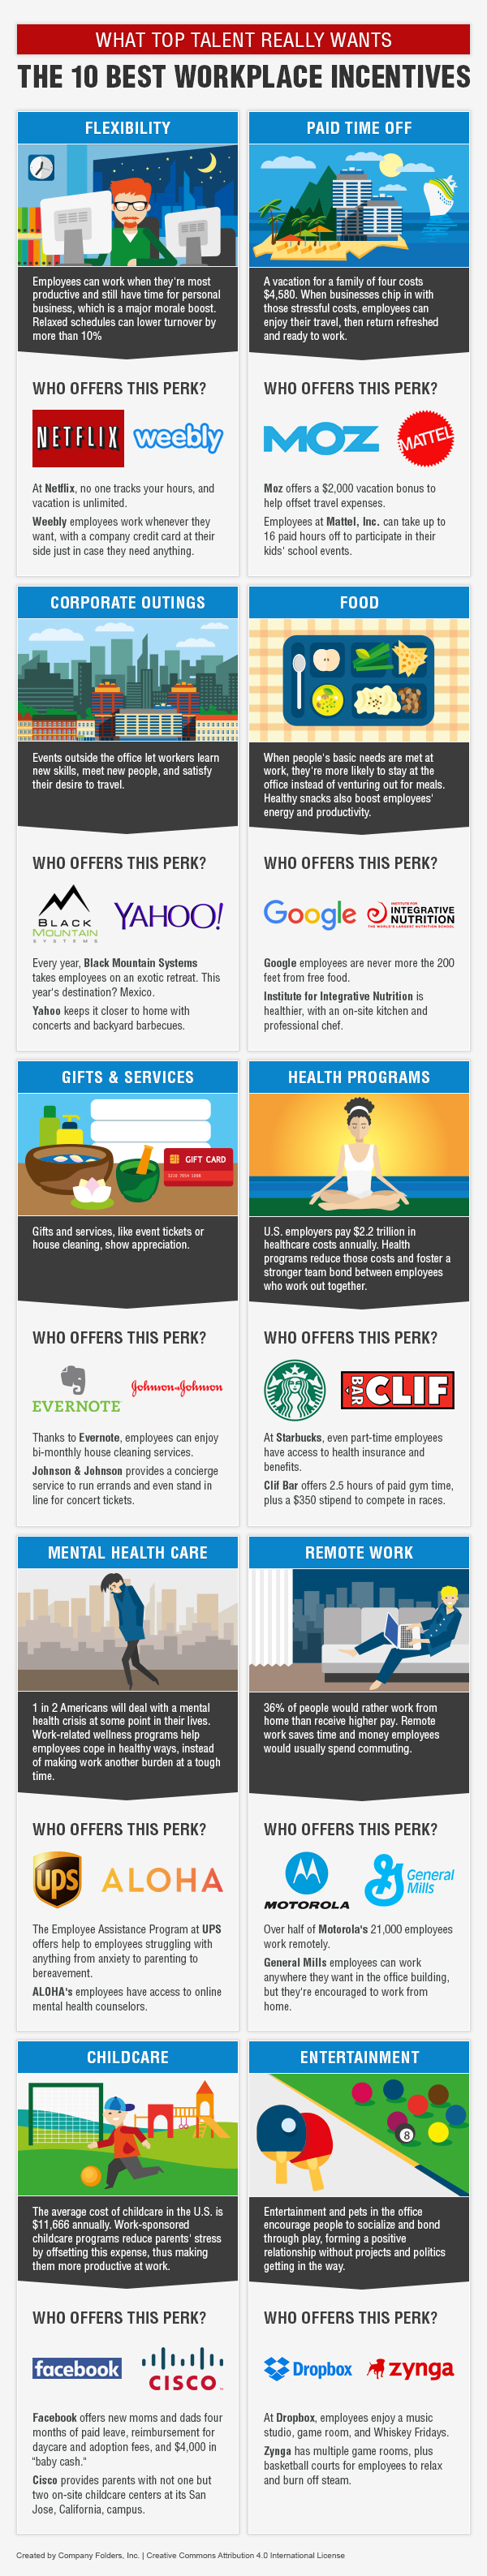 Best workplace incentives - infographic by Company Folders, Inc.